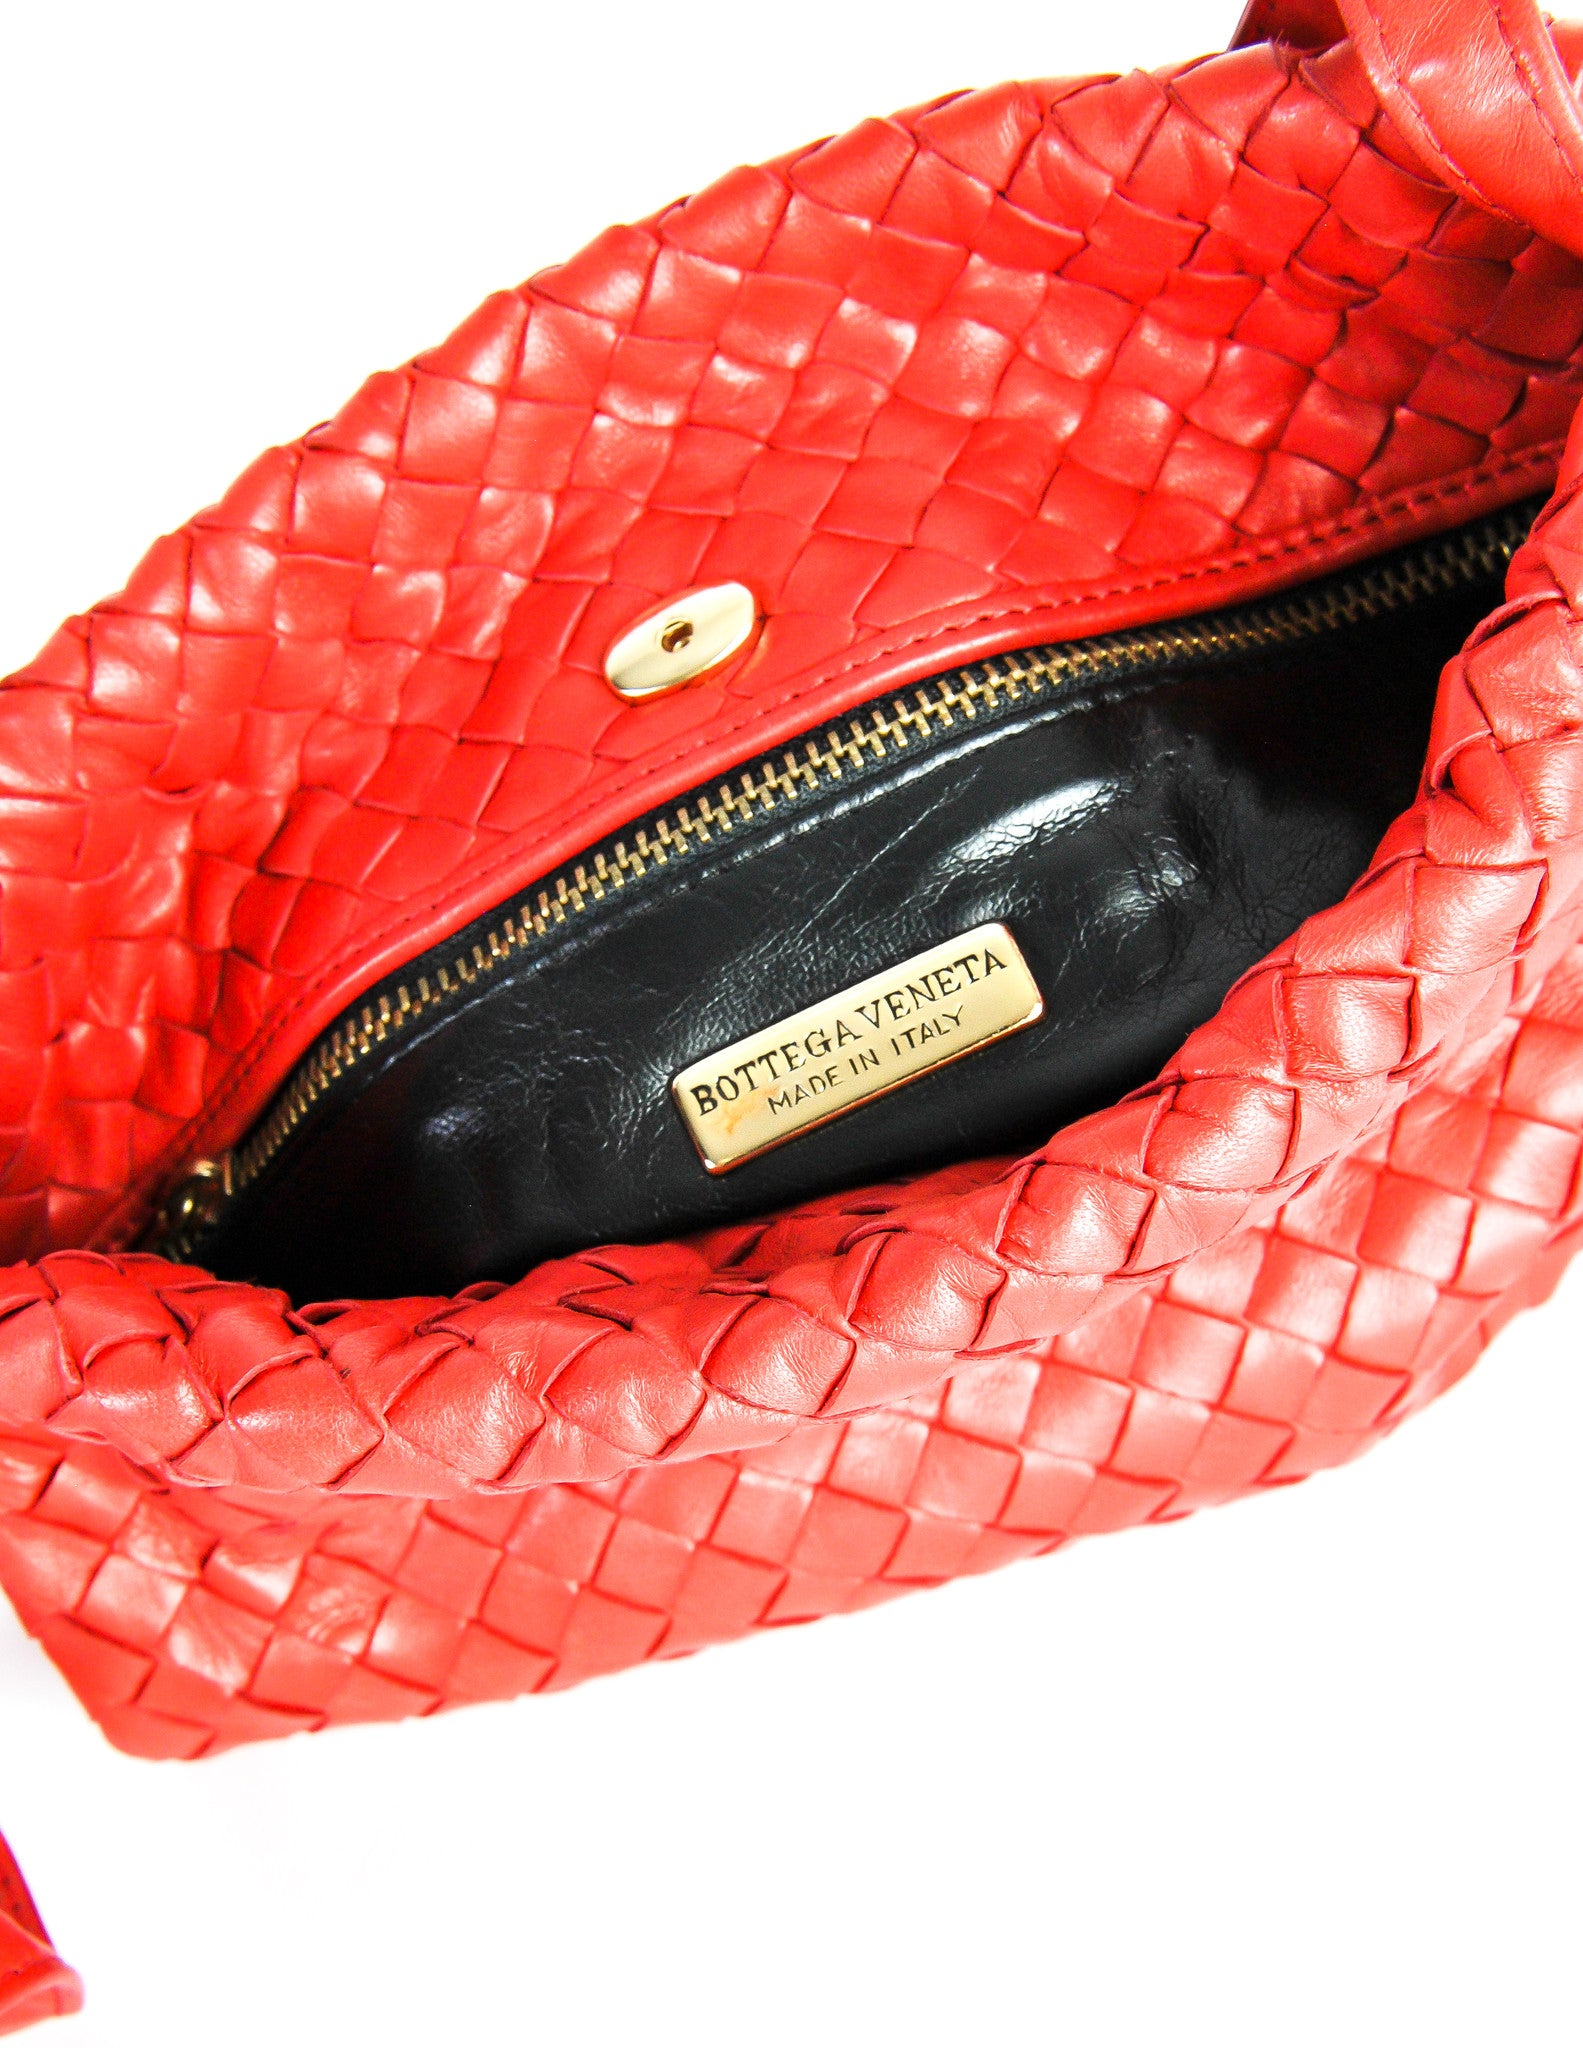 33a02a1fcf Bottega Veneta Vintage Intrecciato Red Woven Leather Drawstring Bag -  Amarcord Vintage Fashion - 8